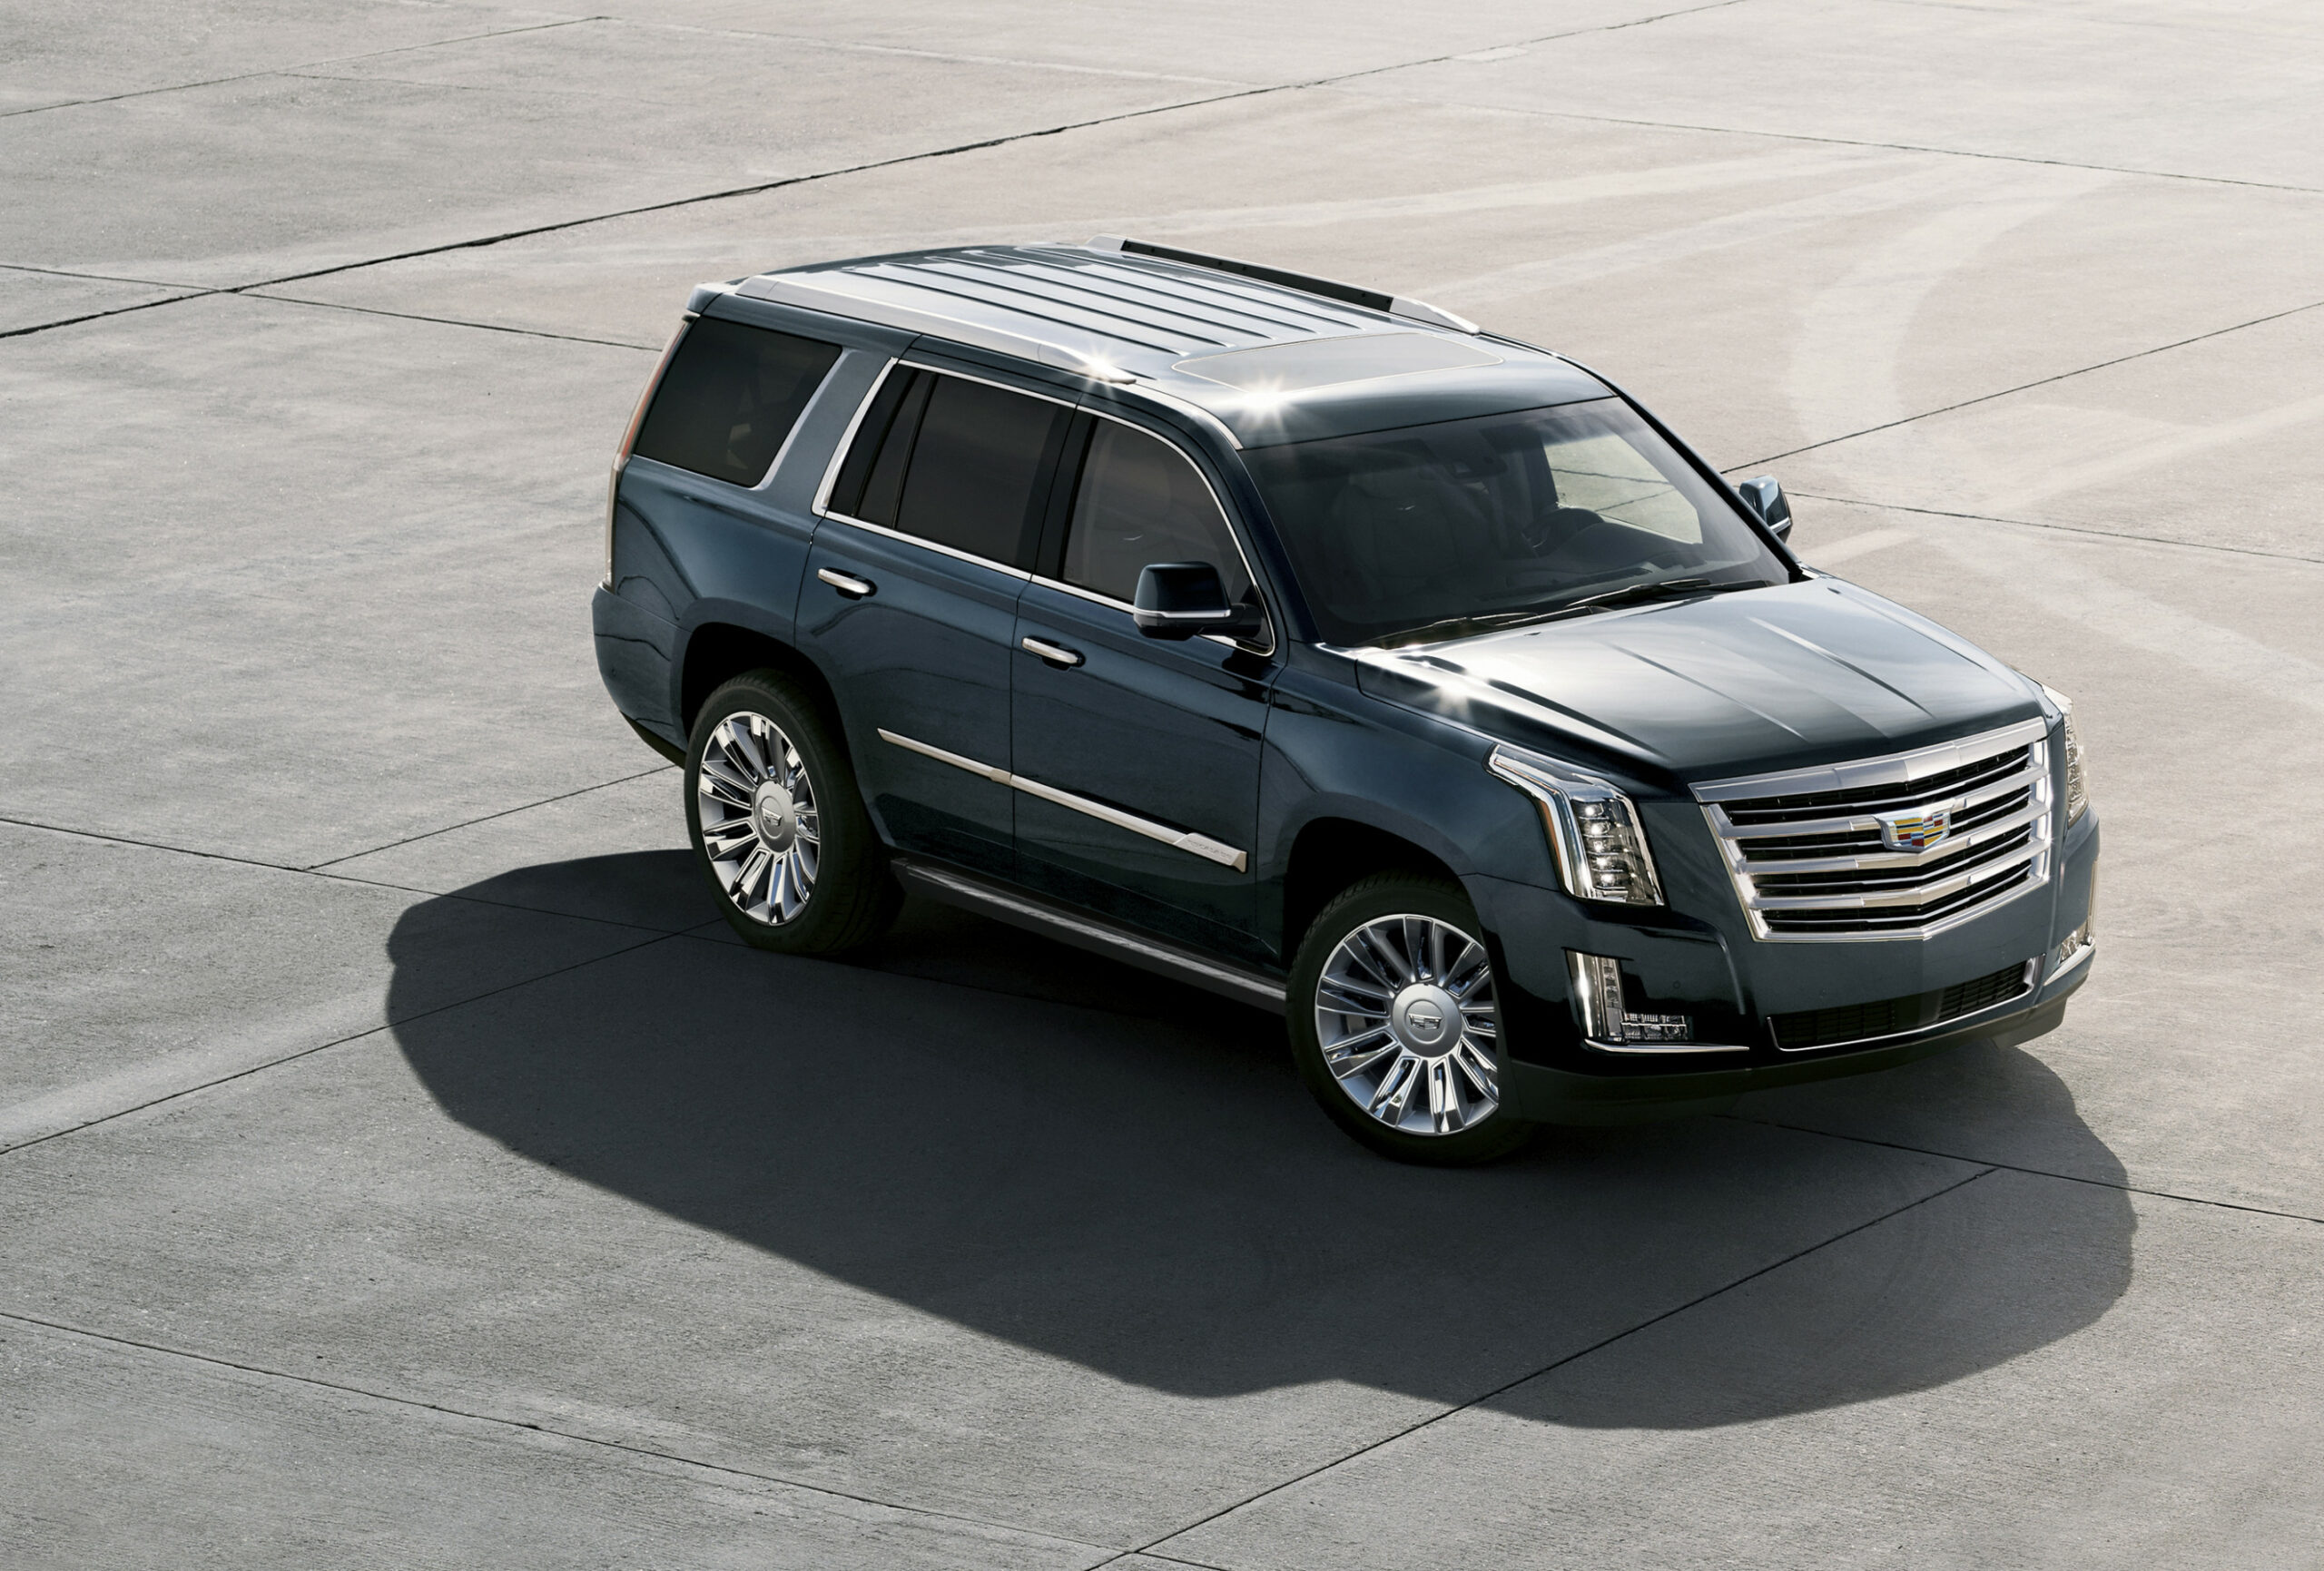 Cadillac Pressroom - Middle East - 6 Escalade